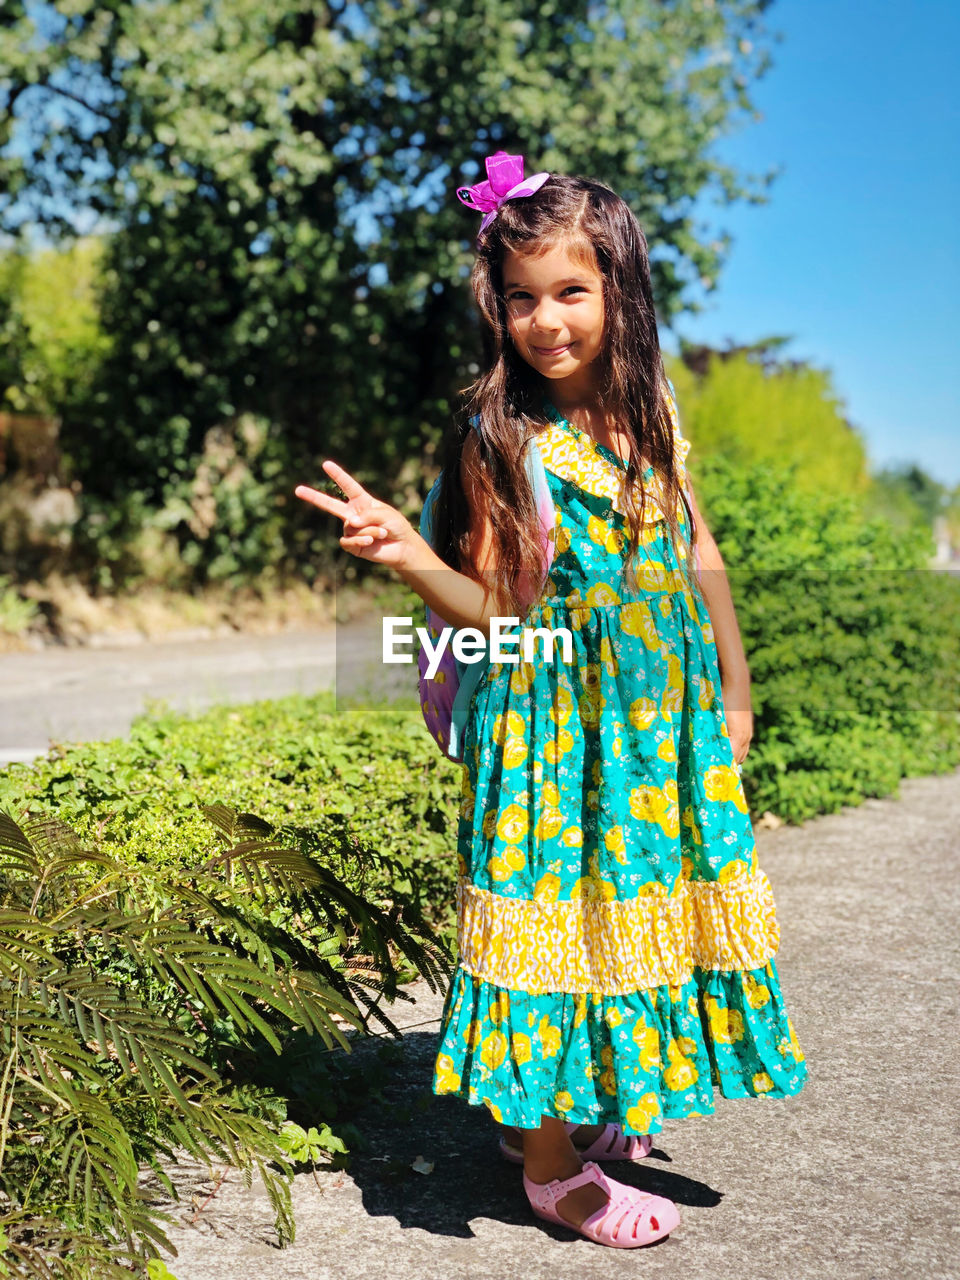 one person, plant, hairstyle, standing, fashion, girls, women, day, tree, nature, smiling, dress, sunlight, front view, looking at camera, child, portrait, long hair, leisure activity, childhood, hair, outdoors, floral pattern